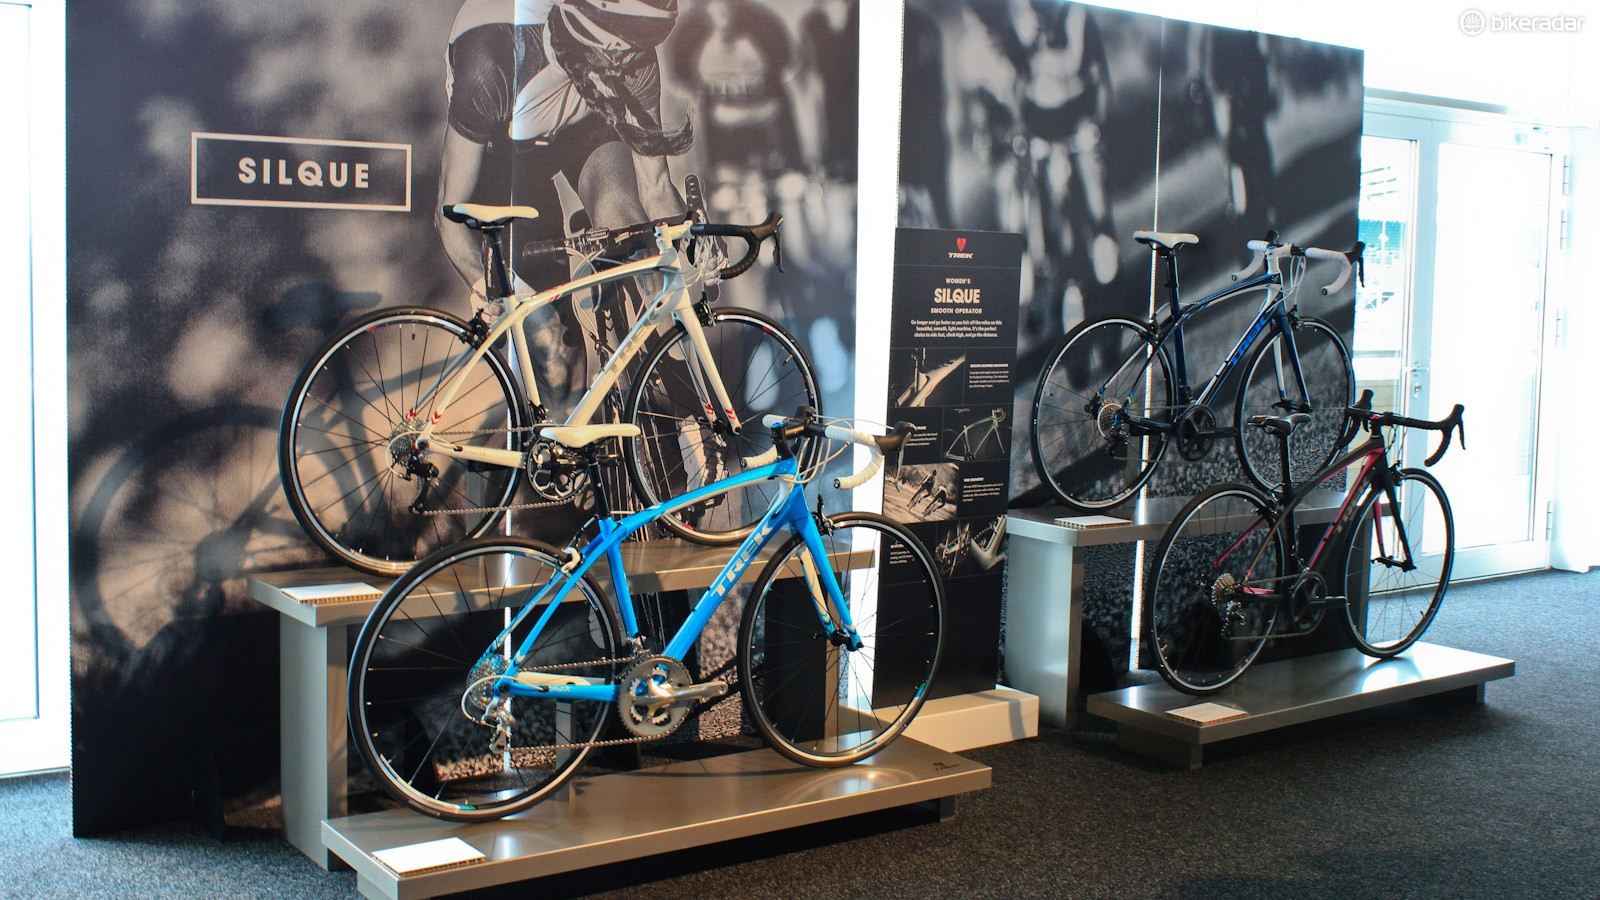 The Silque is an all-new carbon road bike developed specifically for women